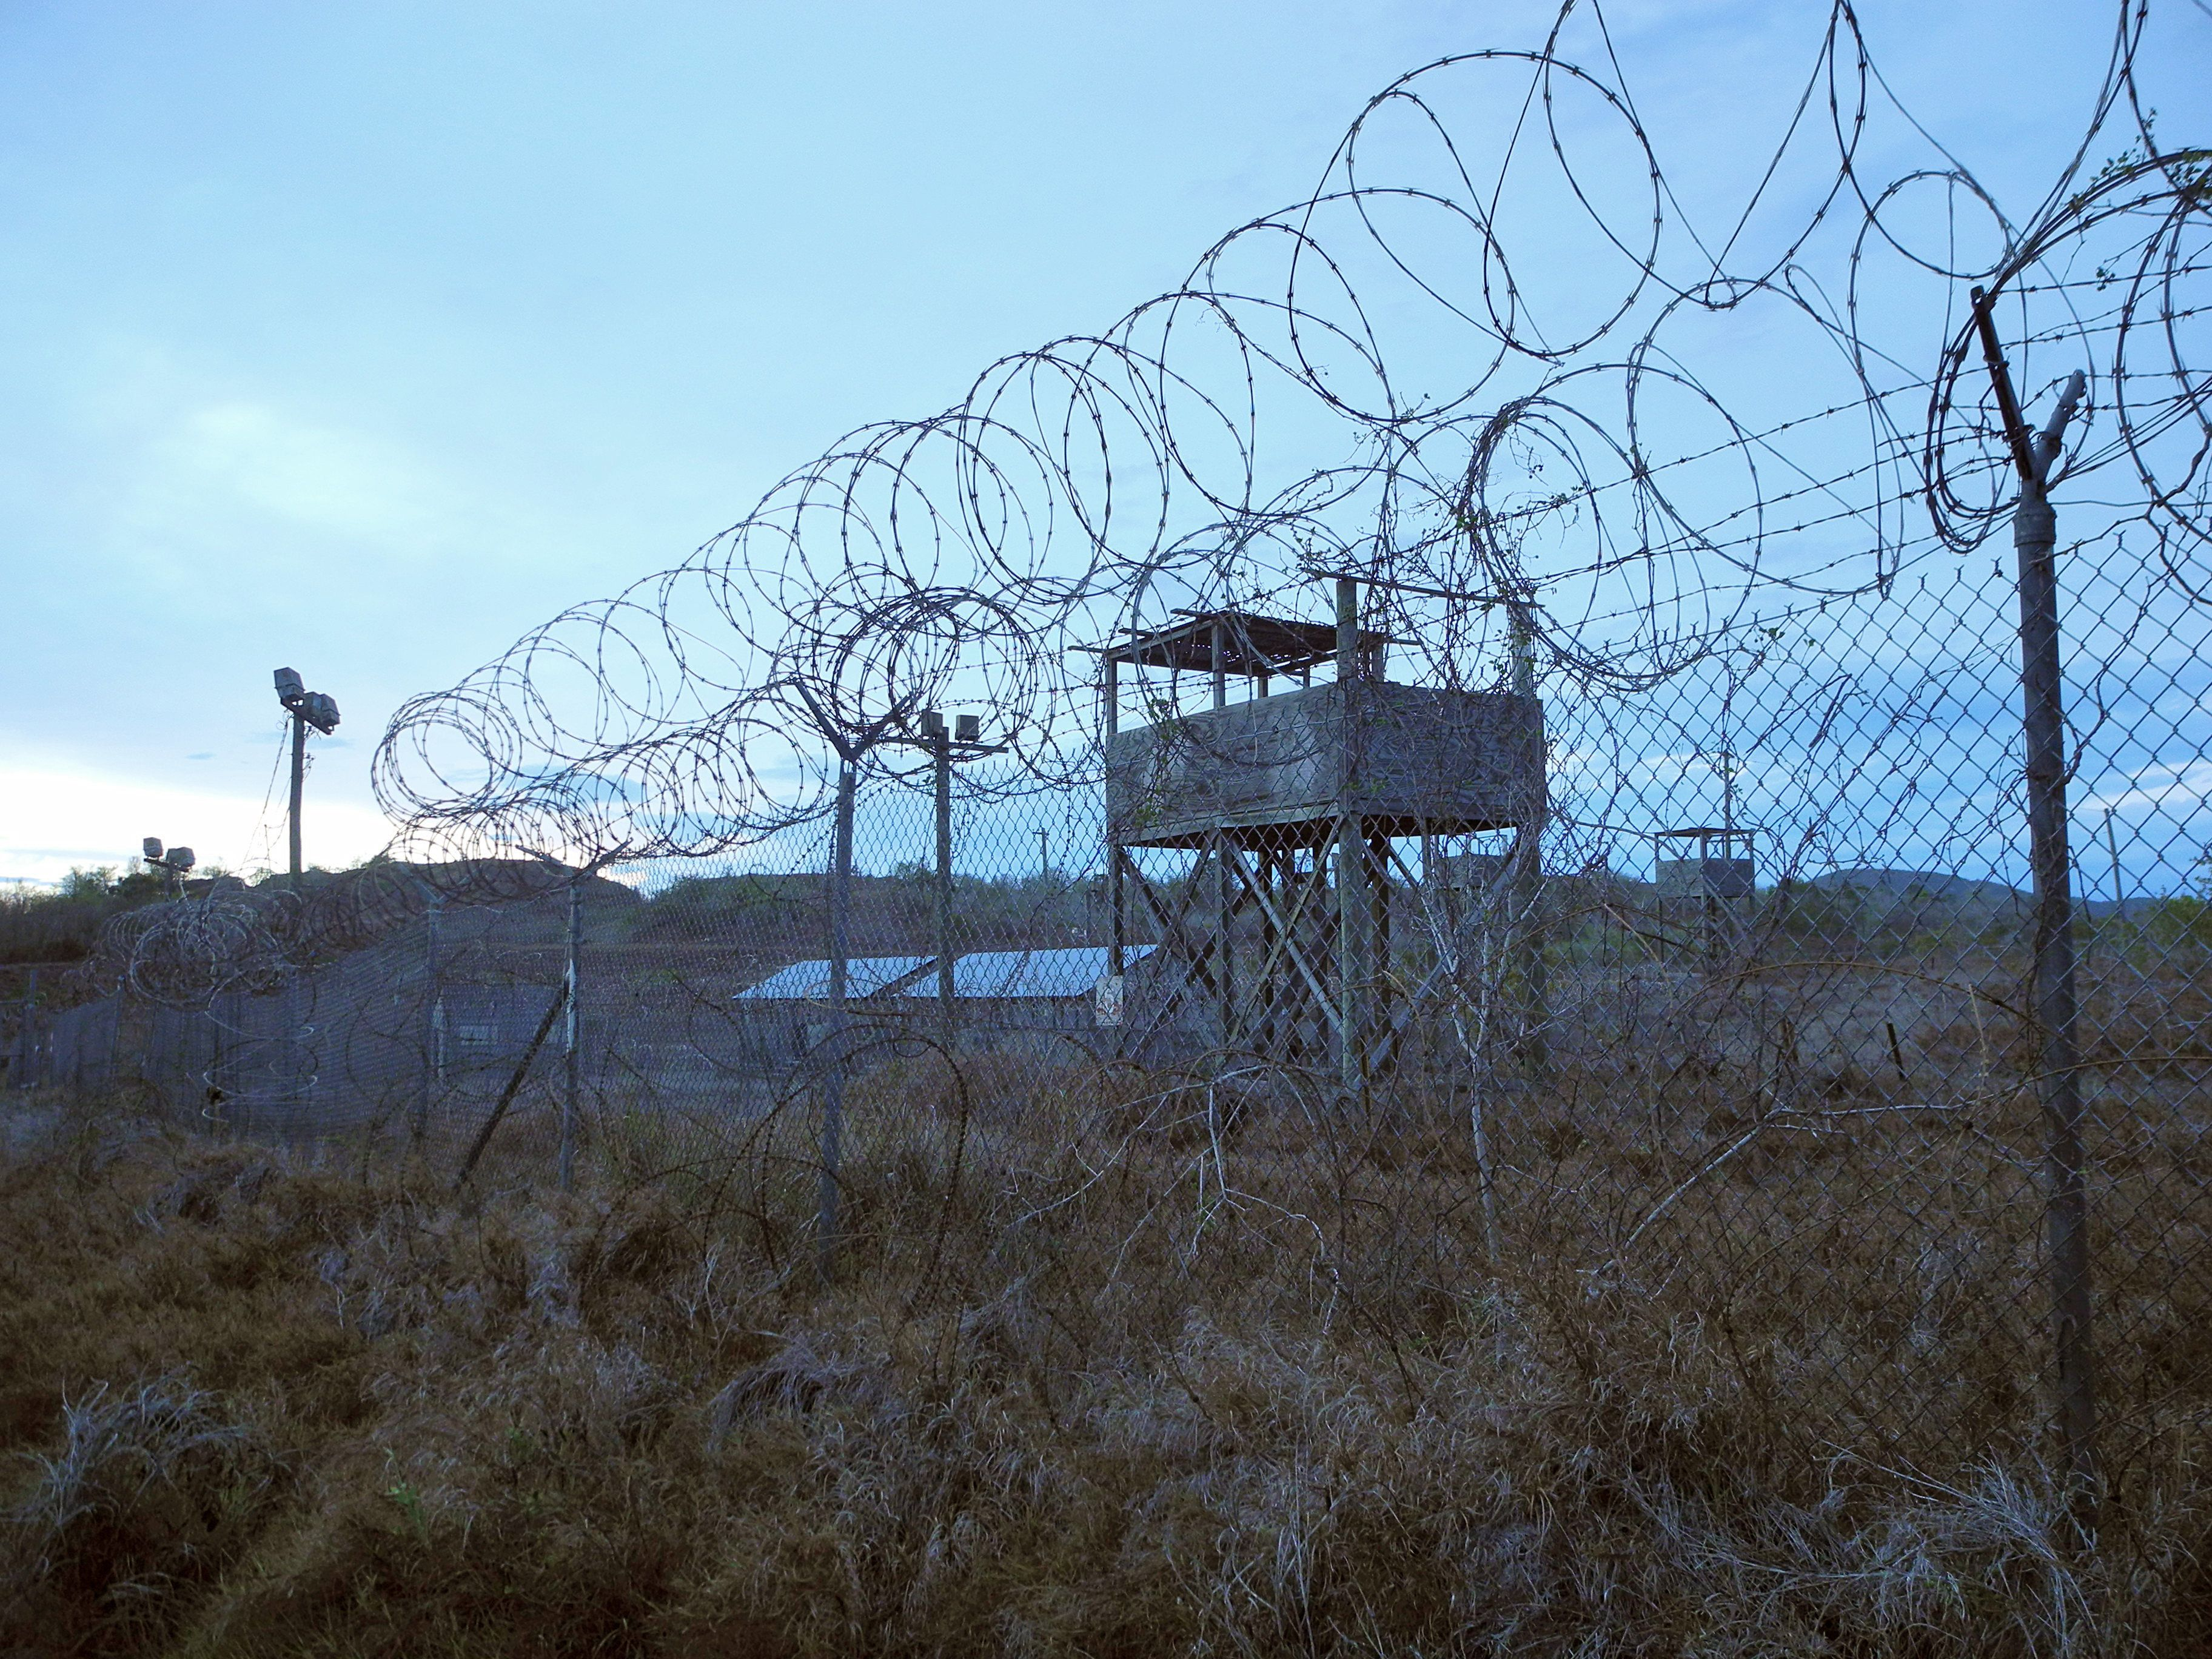 Trump's Guantanamo Plan Could Force Court Battle Over Legality Of ISIS War